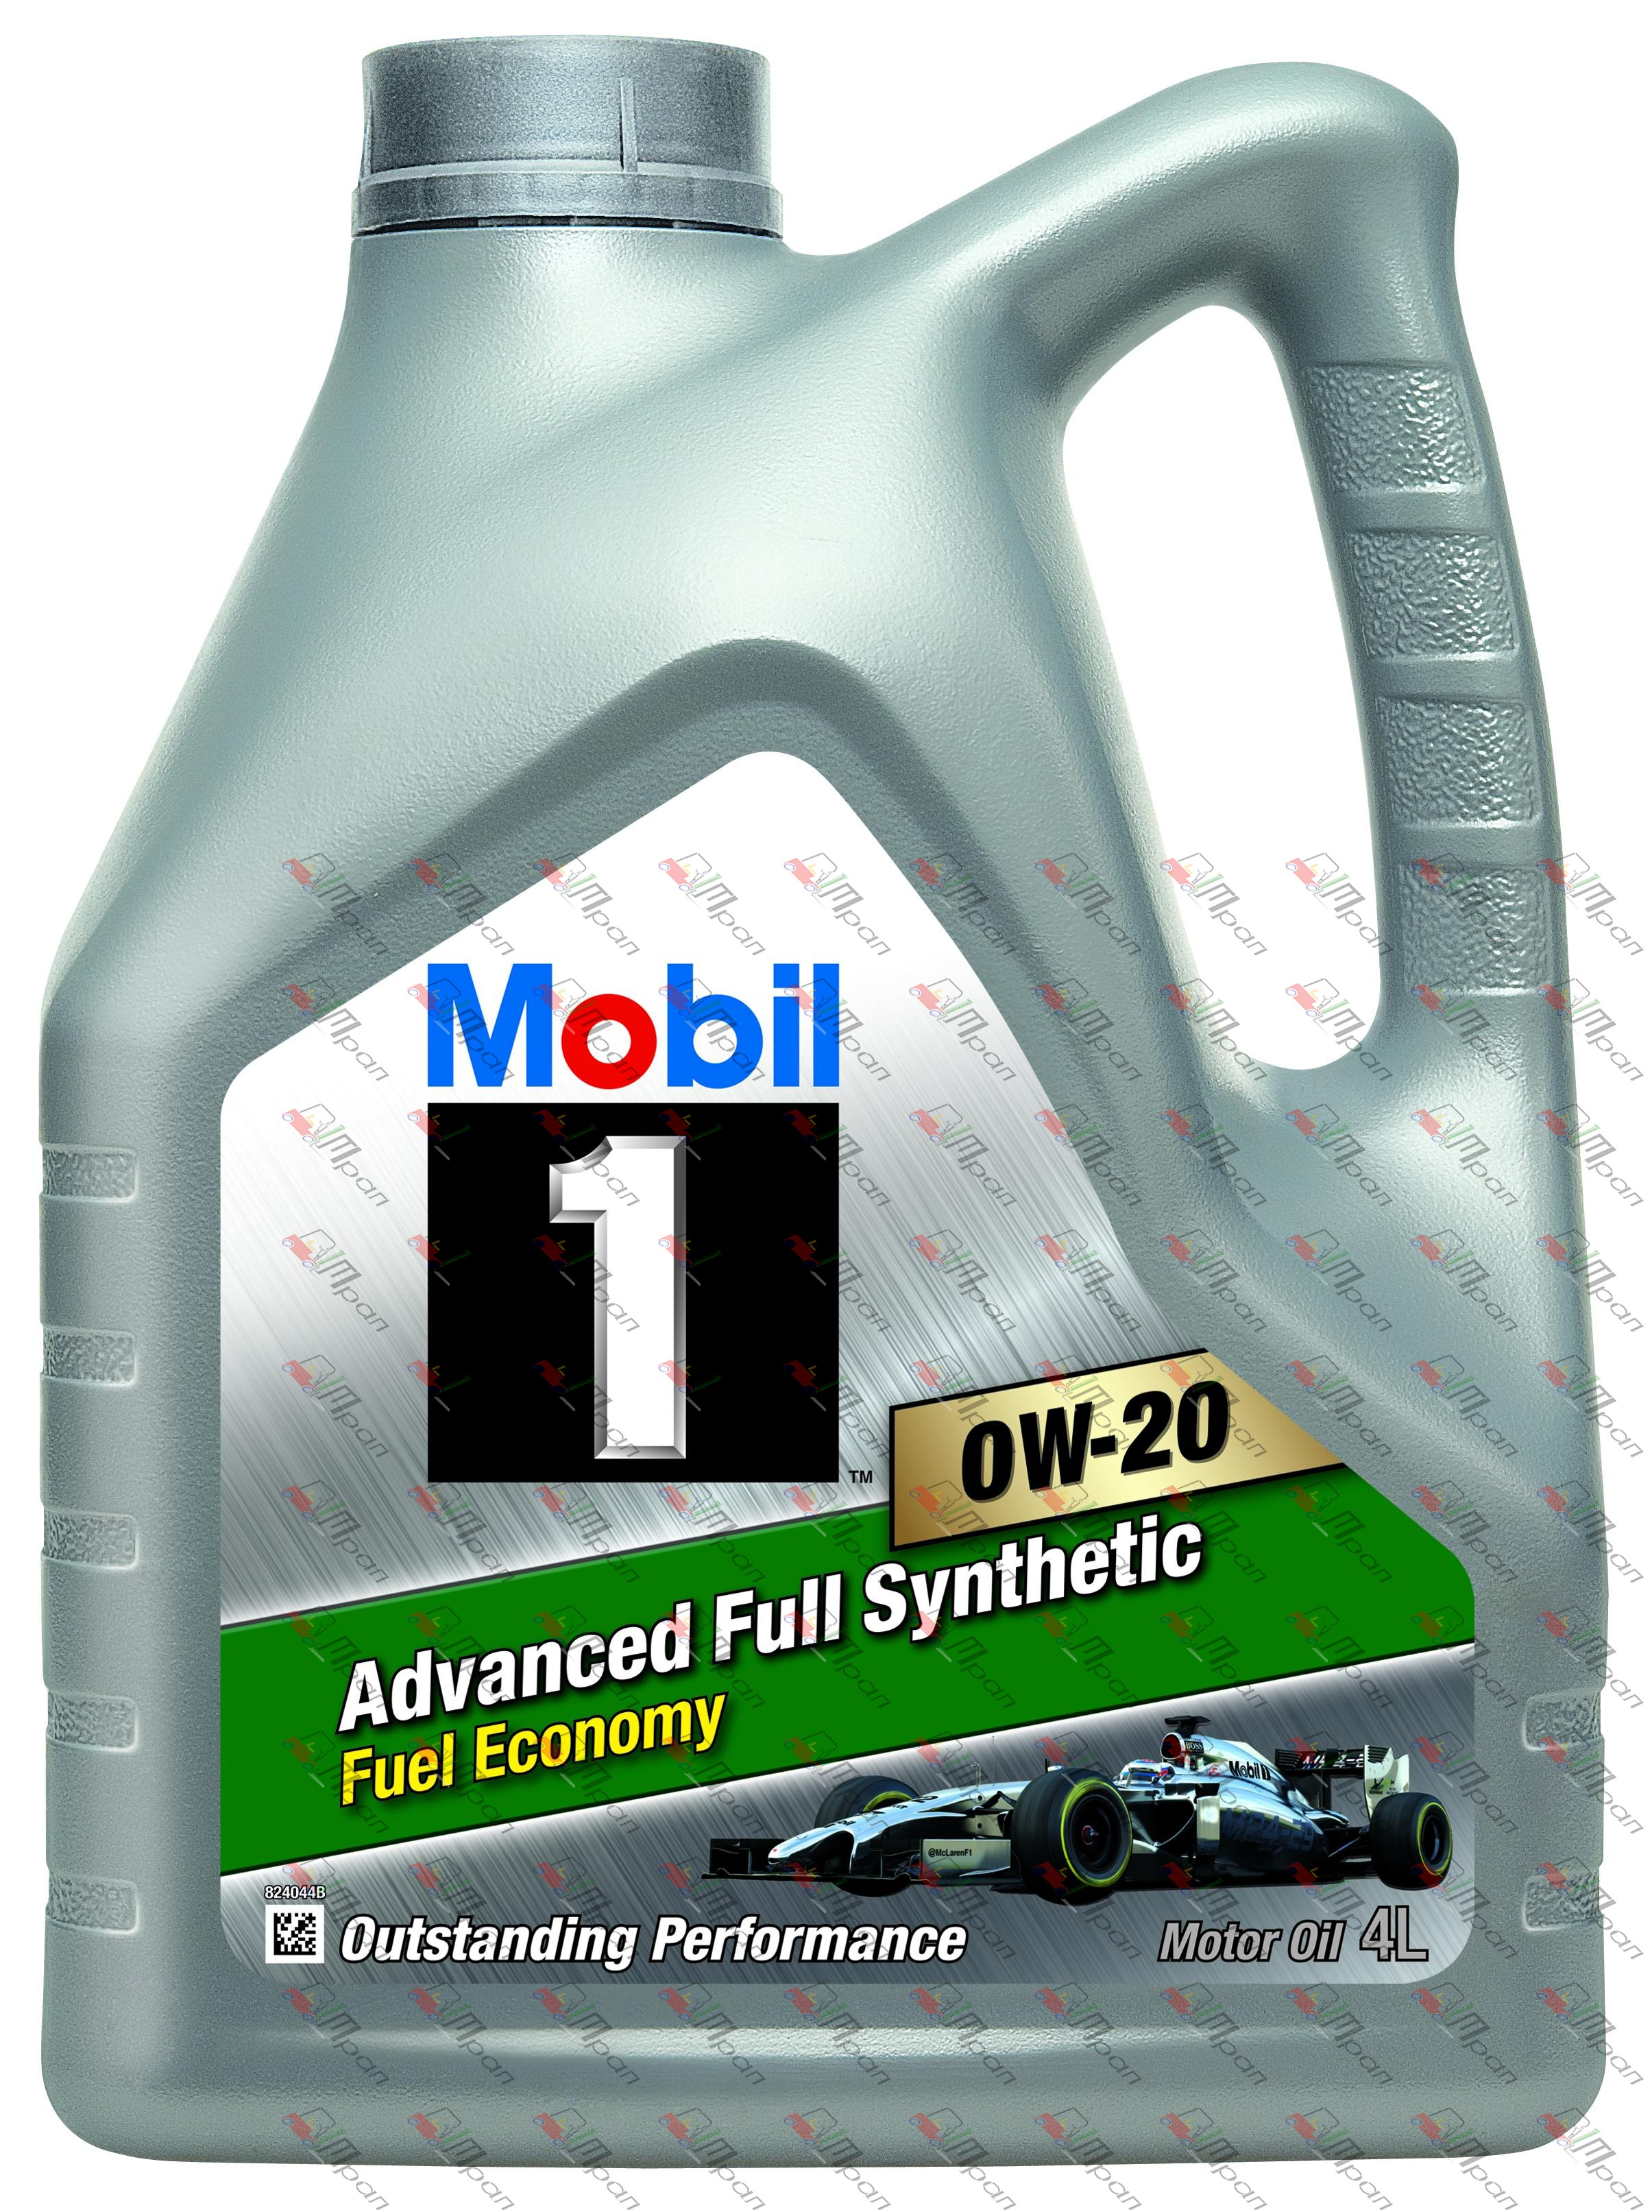 Mobil Масло моторное синтетич. Mobil 1 FE 0w20 4л